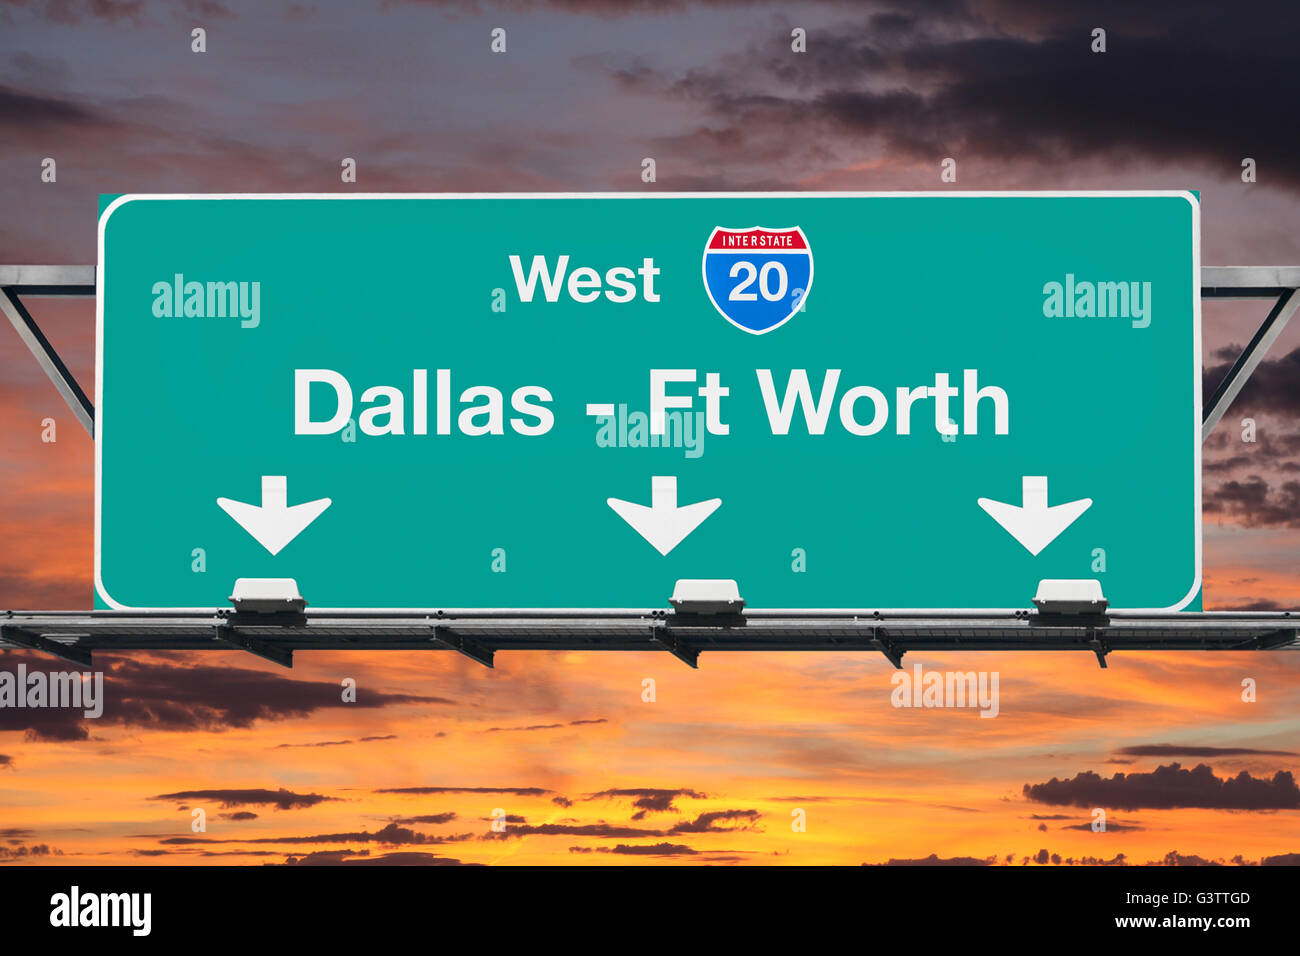 Dallas Ft Worth Interstate 20 west highway sign with sunrise sky. - Stock Image